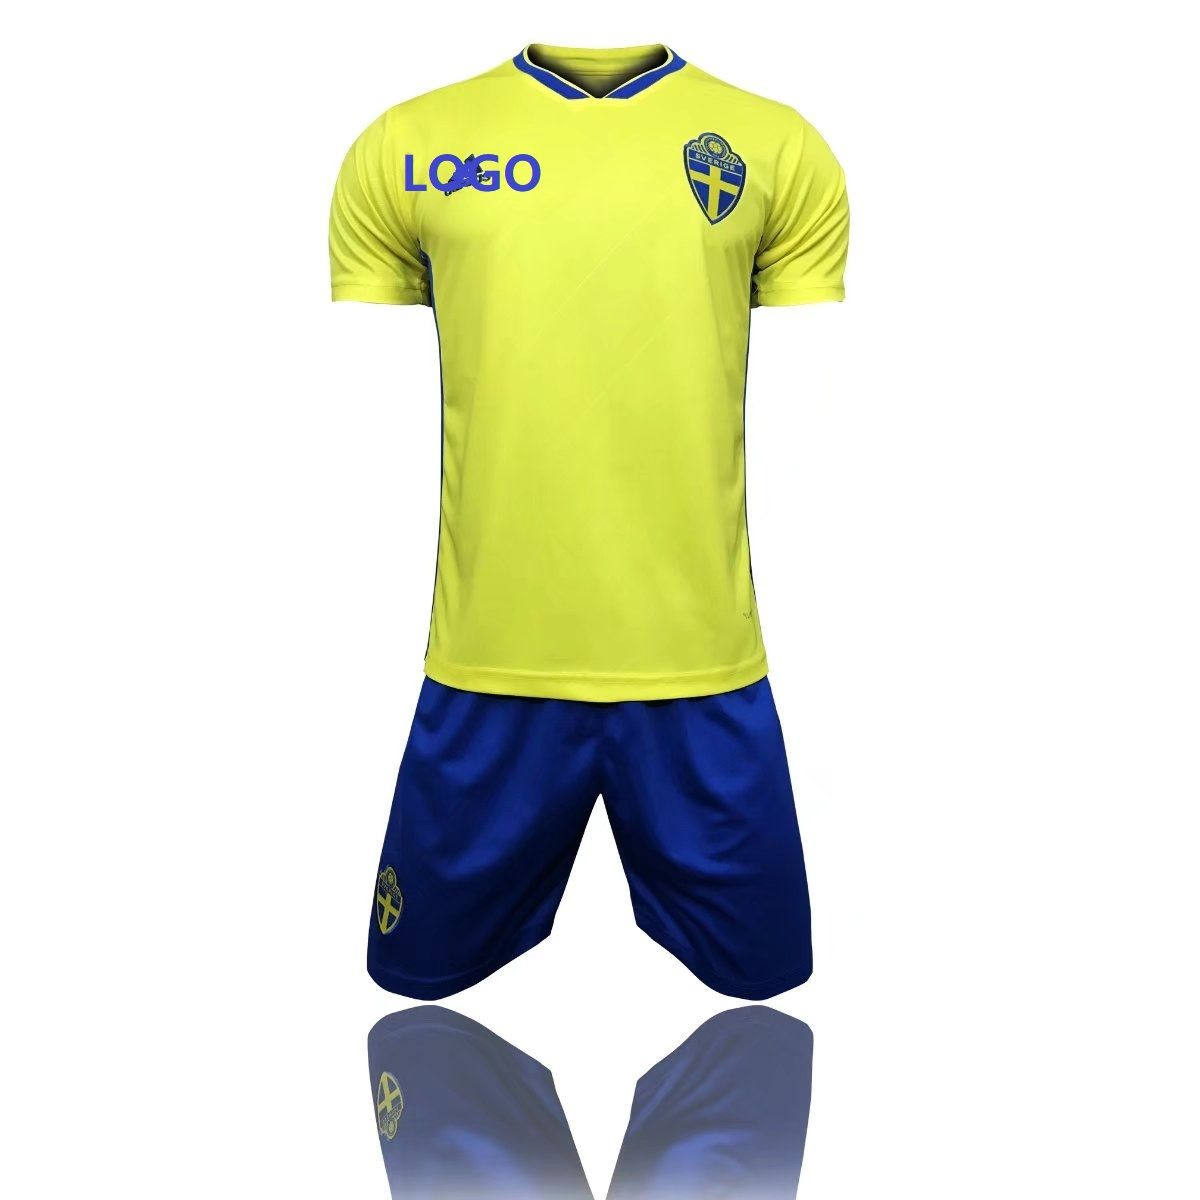 225c5286f3c 2018 Adult Sweden Home Yellow Soccer Jersey Uniforms Russia World Cup  Football Team Kits Custom Name Number